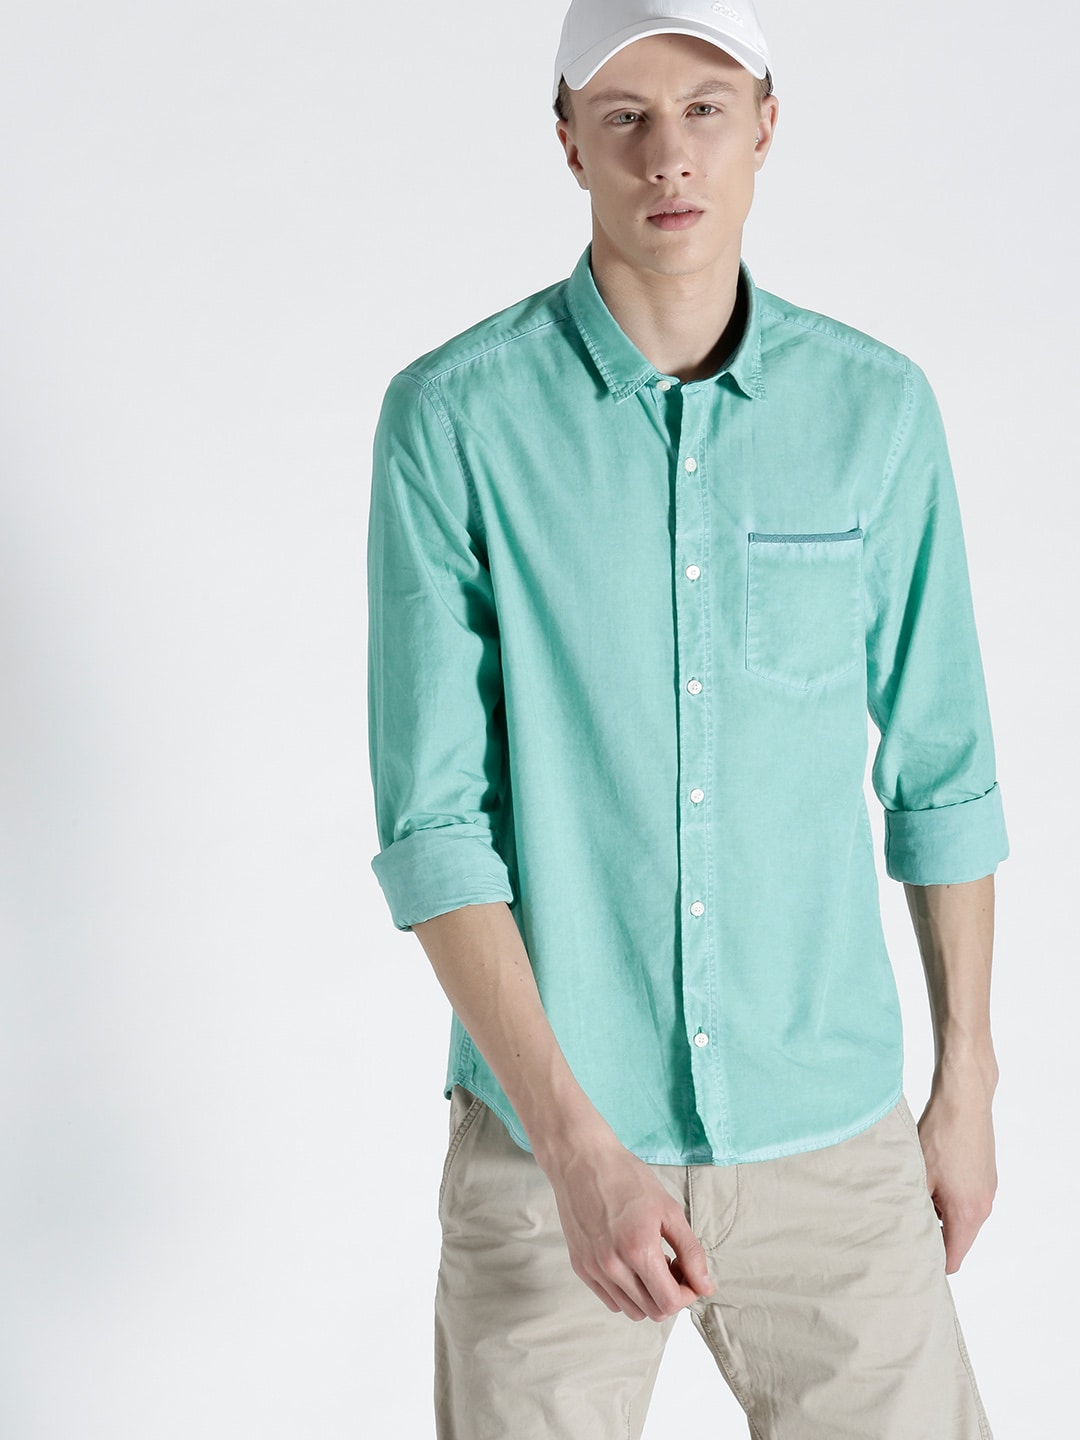 ed68f338a976 s Oliver - Buy apparels from S.Oliver Online in India - Myntra